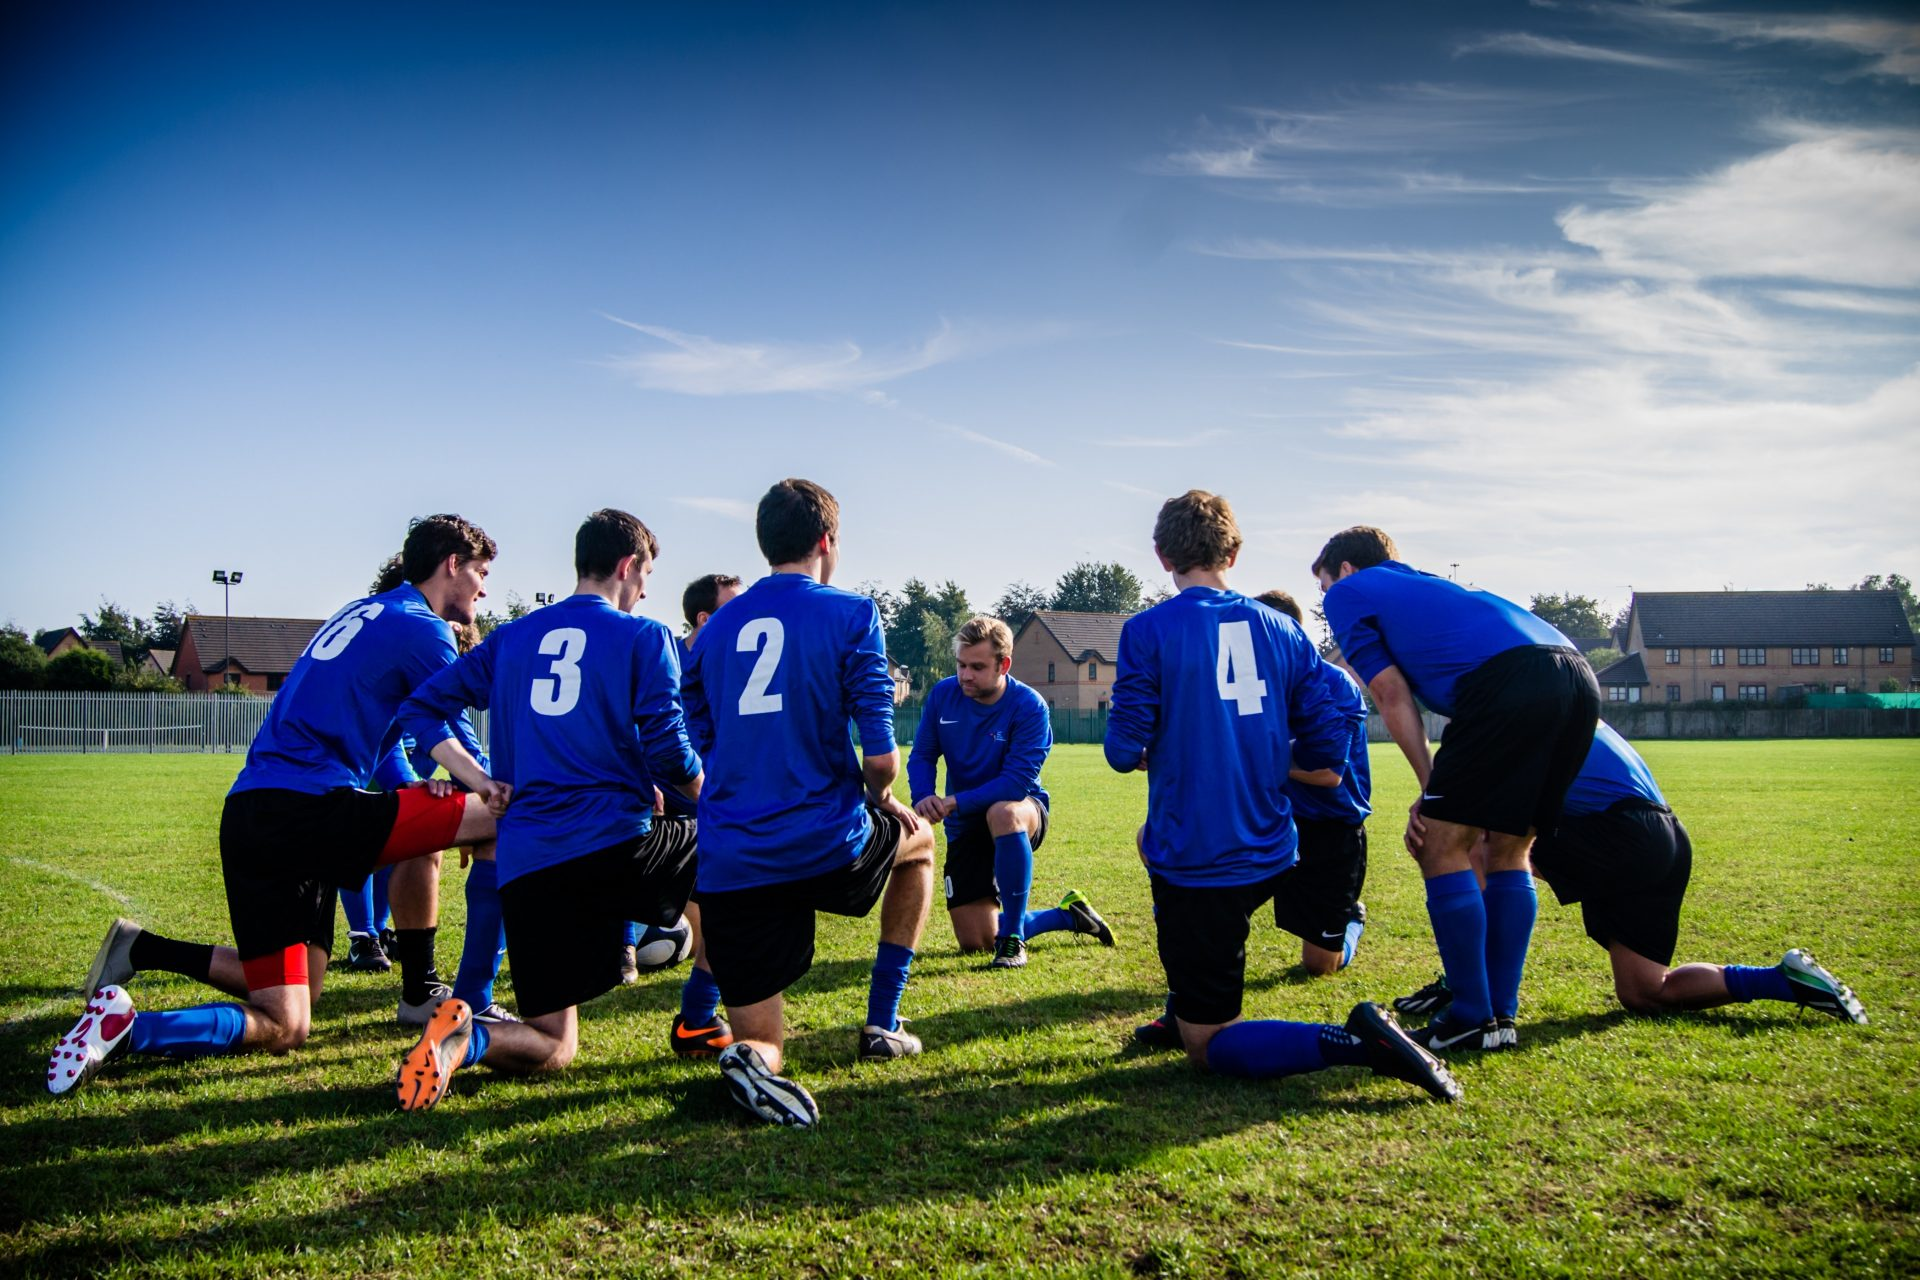 Overcome performance nerves as a team